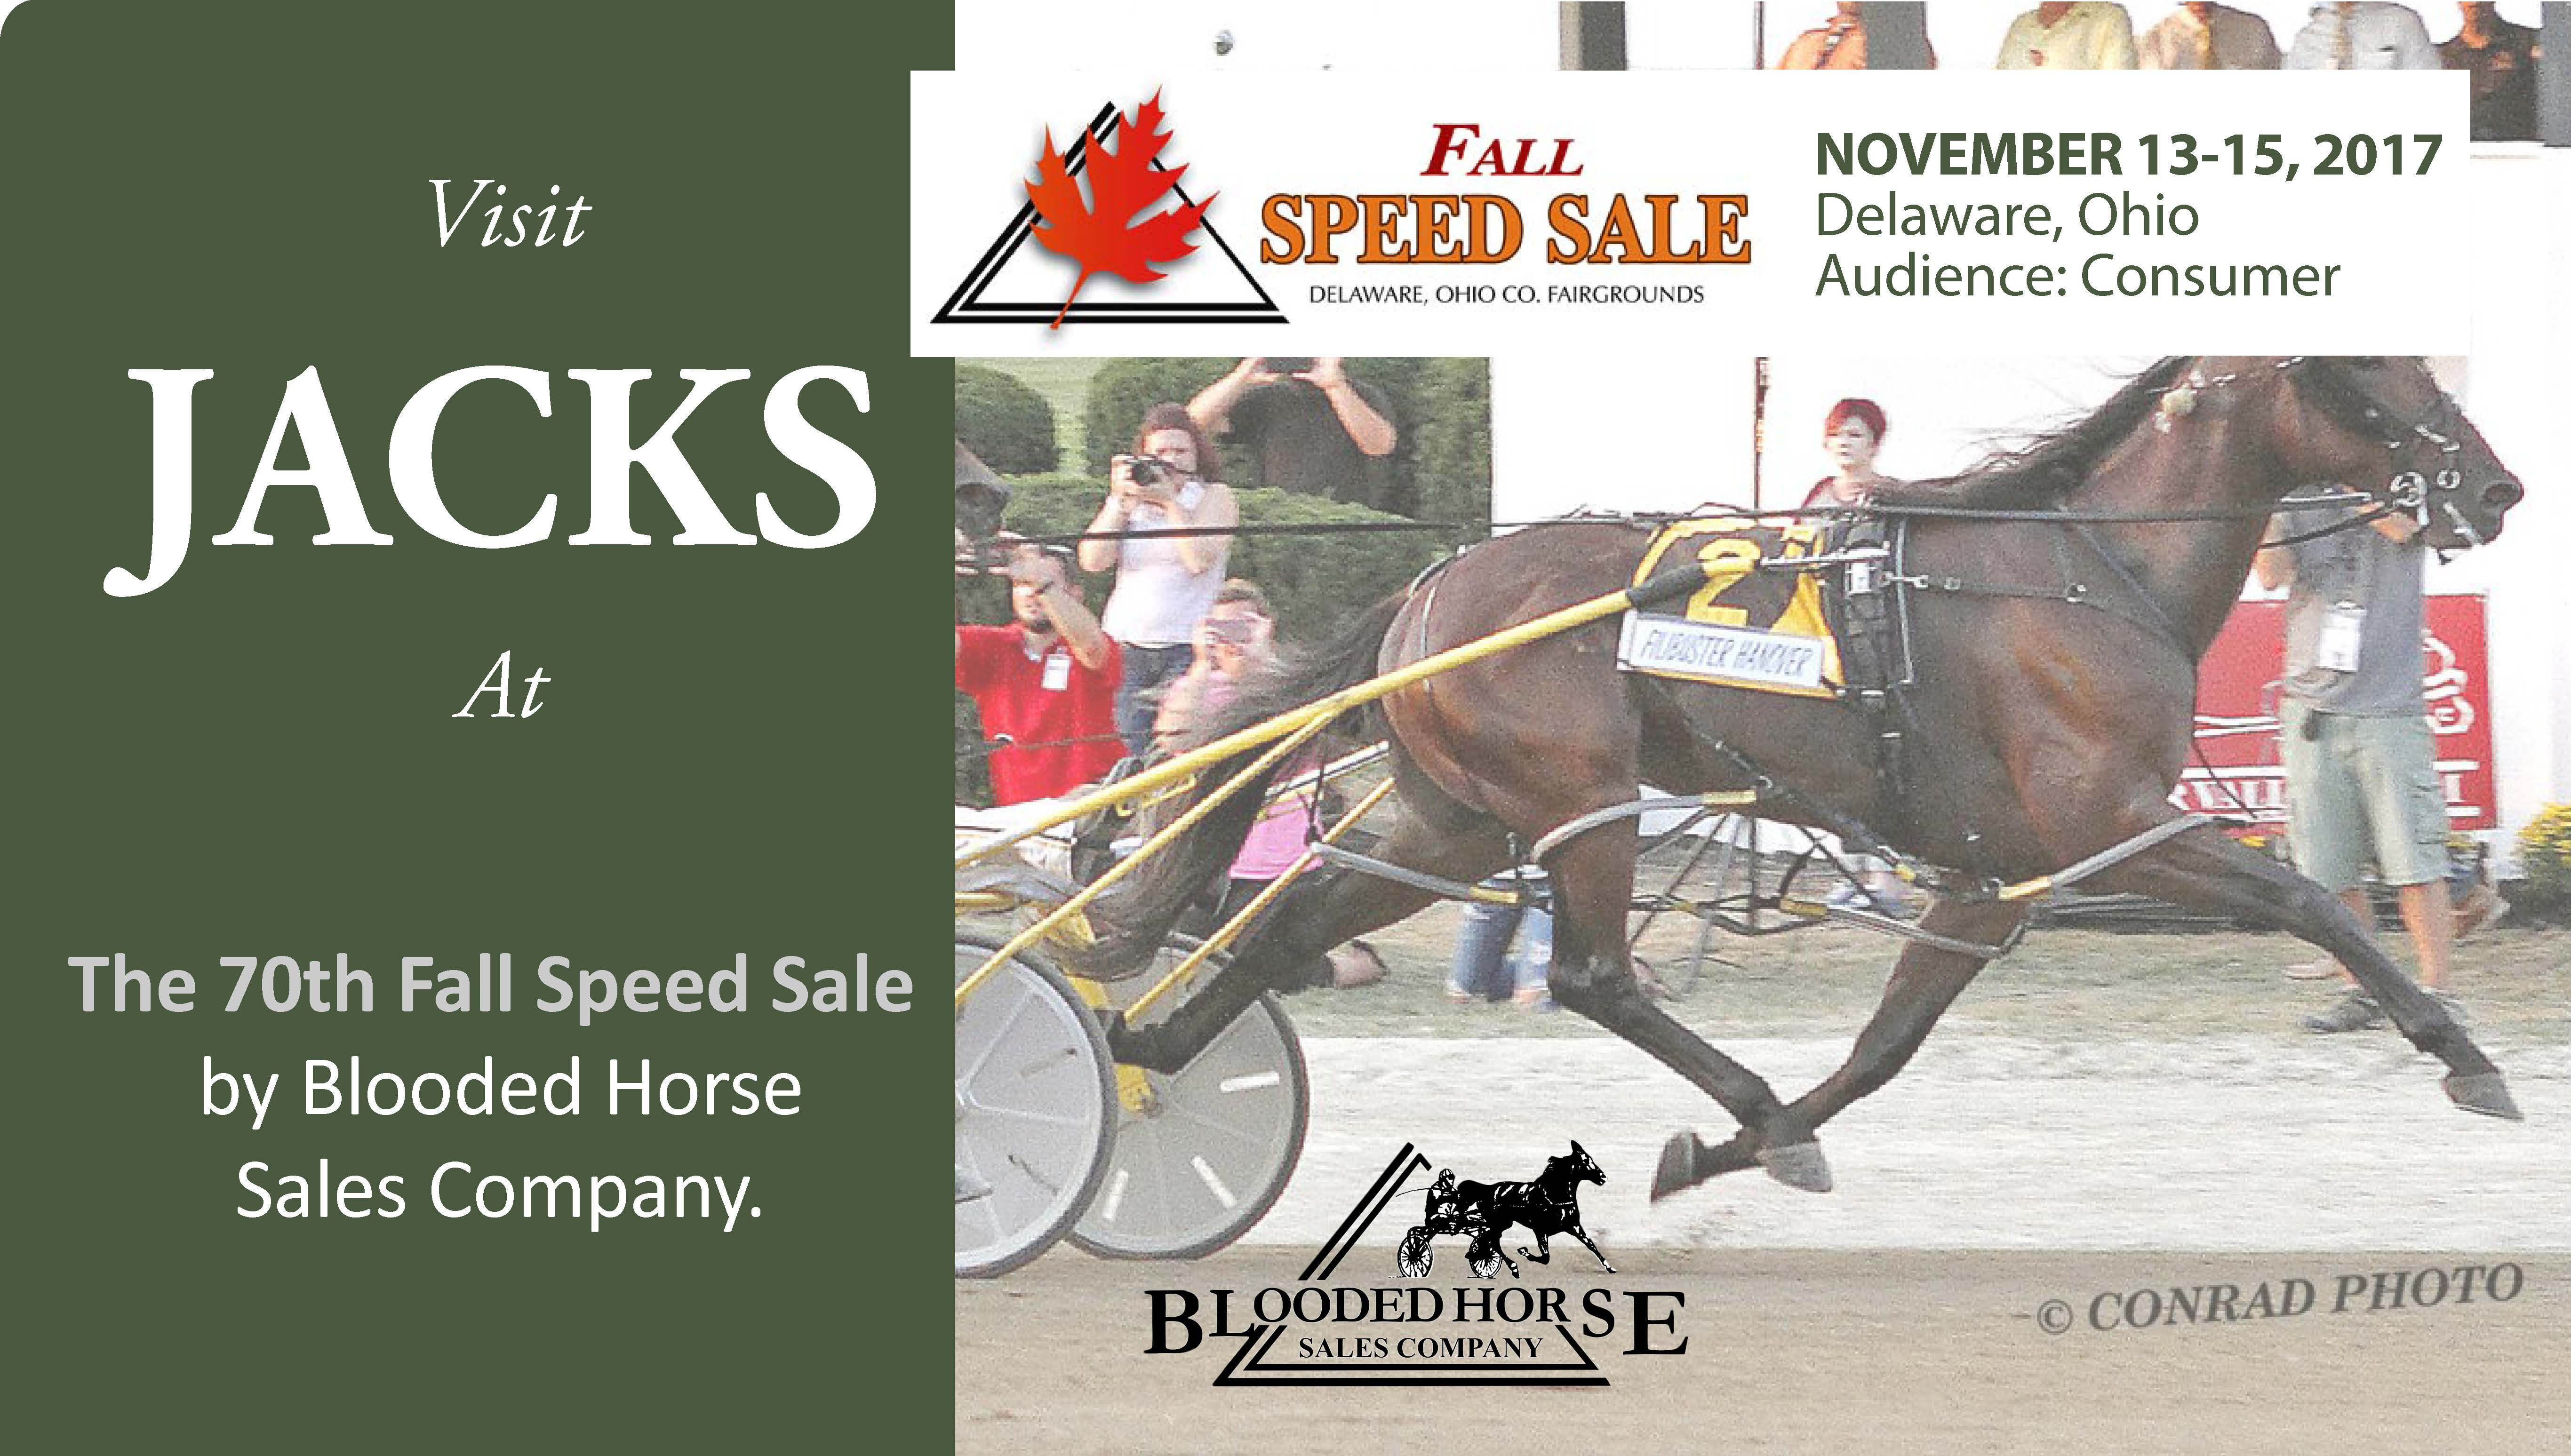 Visit JACKS at the Delaware, Ohio Fall Sale